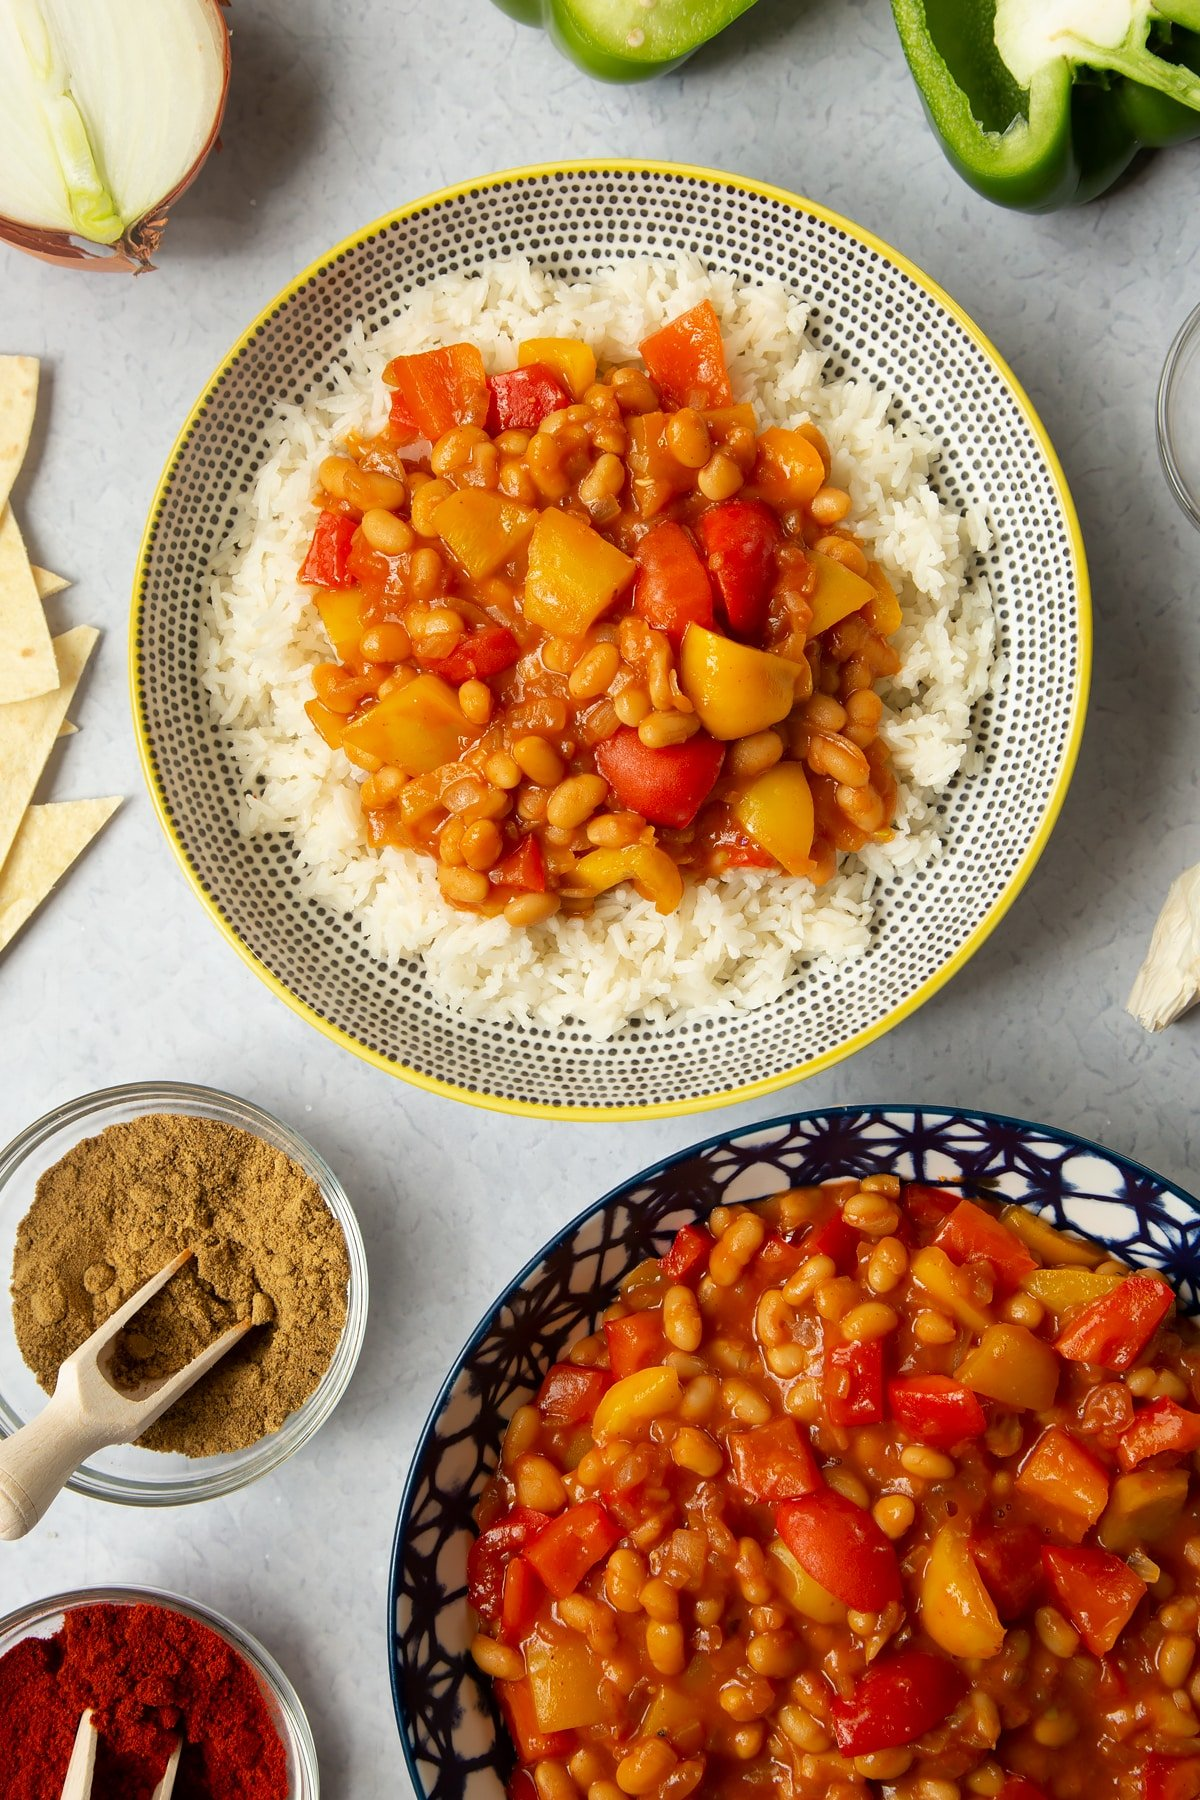 A 5 minute baked bean chilli served on a bed of rice in a bowl. More chilli is in a bowl to the side and ingredients to make the chilli surround the bowls.